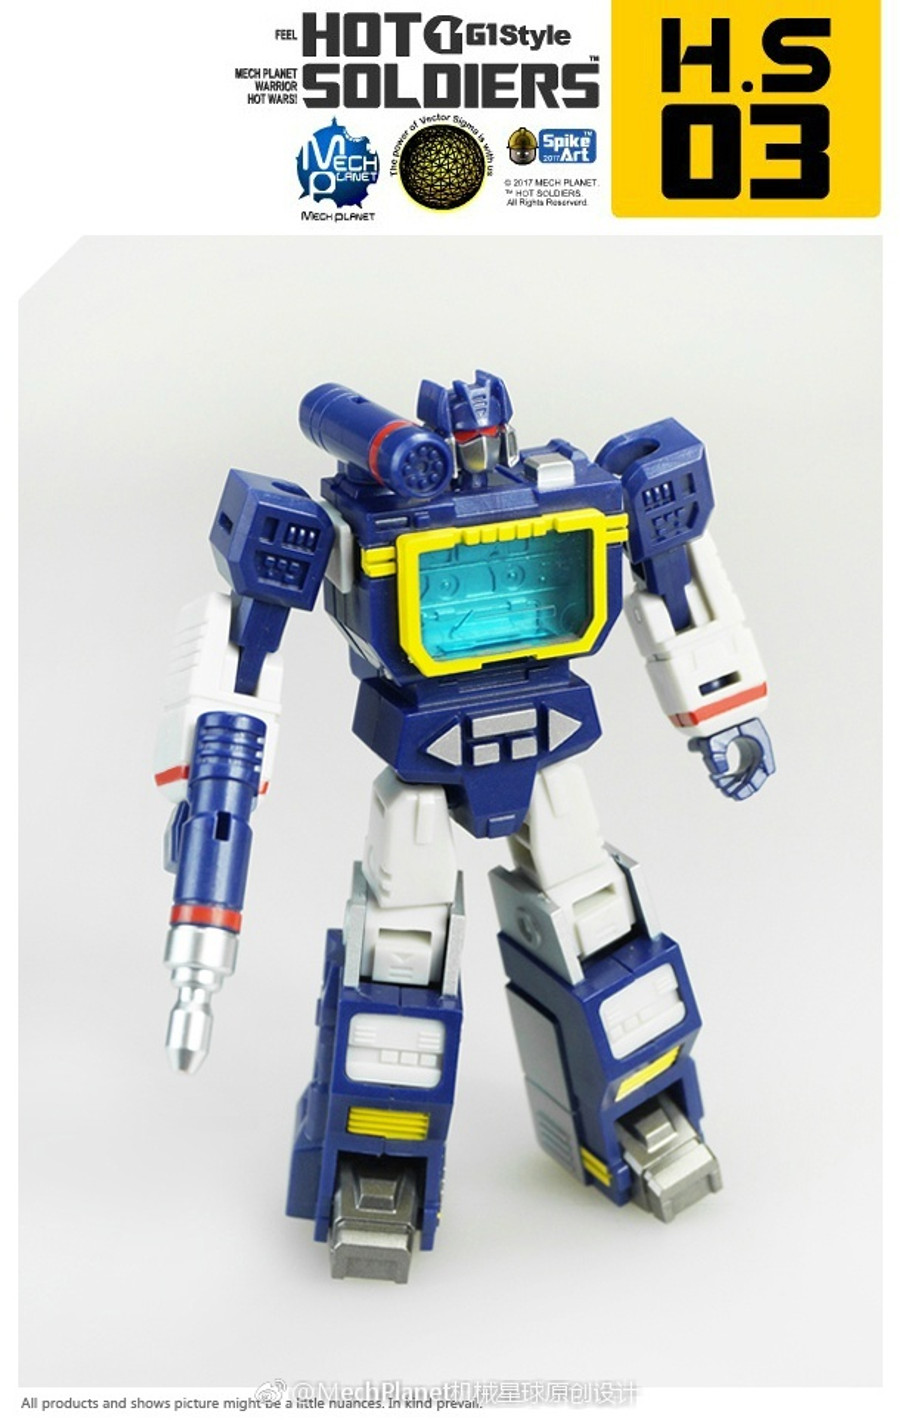 Mech Planet - Hot Soldiers HS-03 Soundtrack and HS-04 Laser Bird